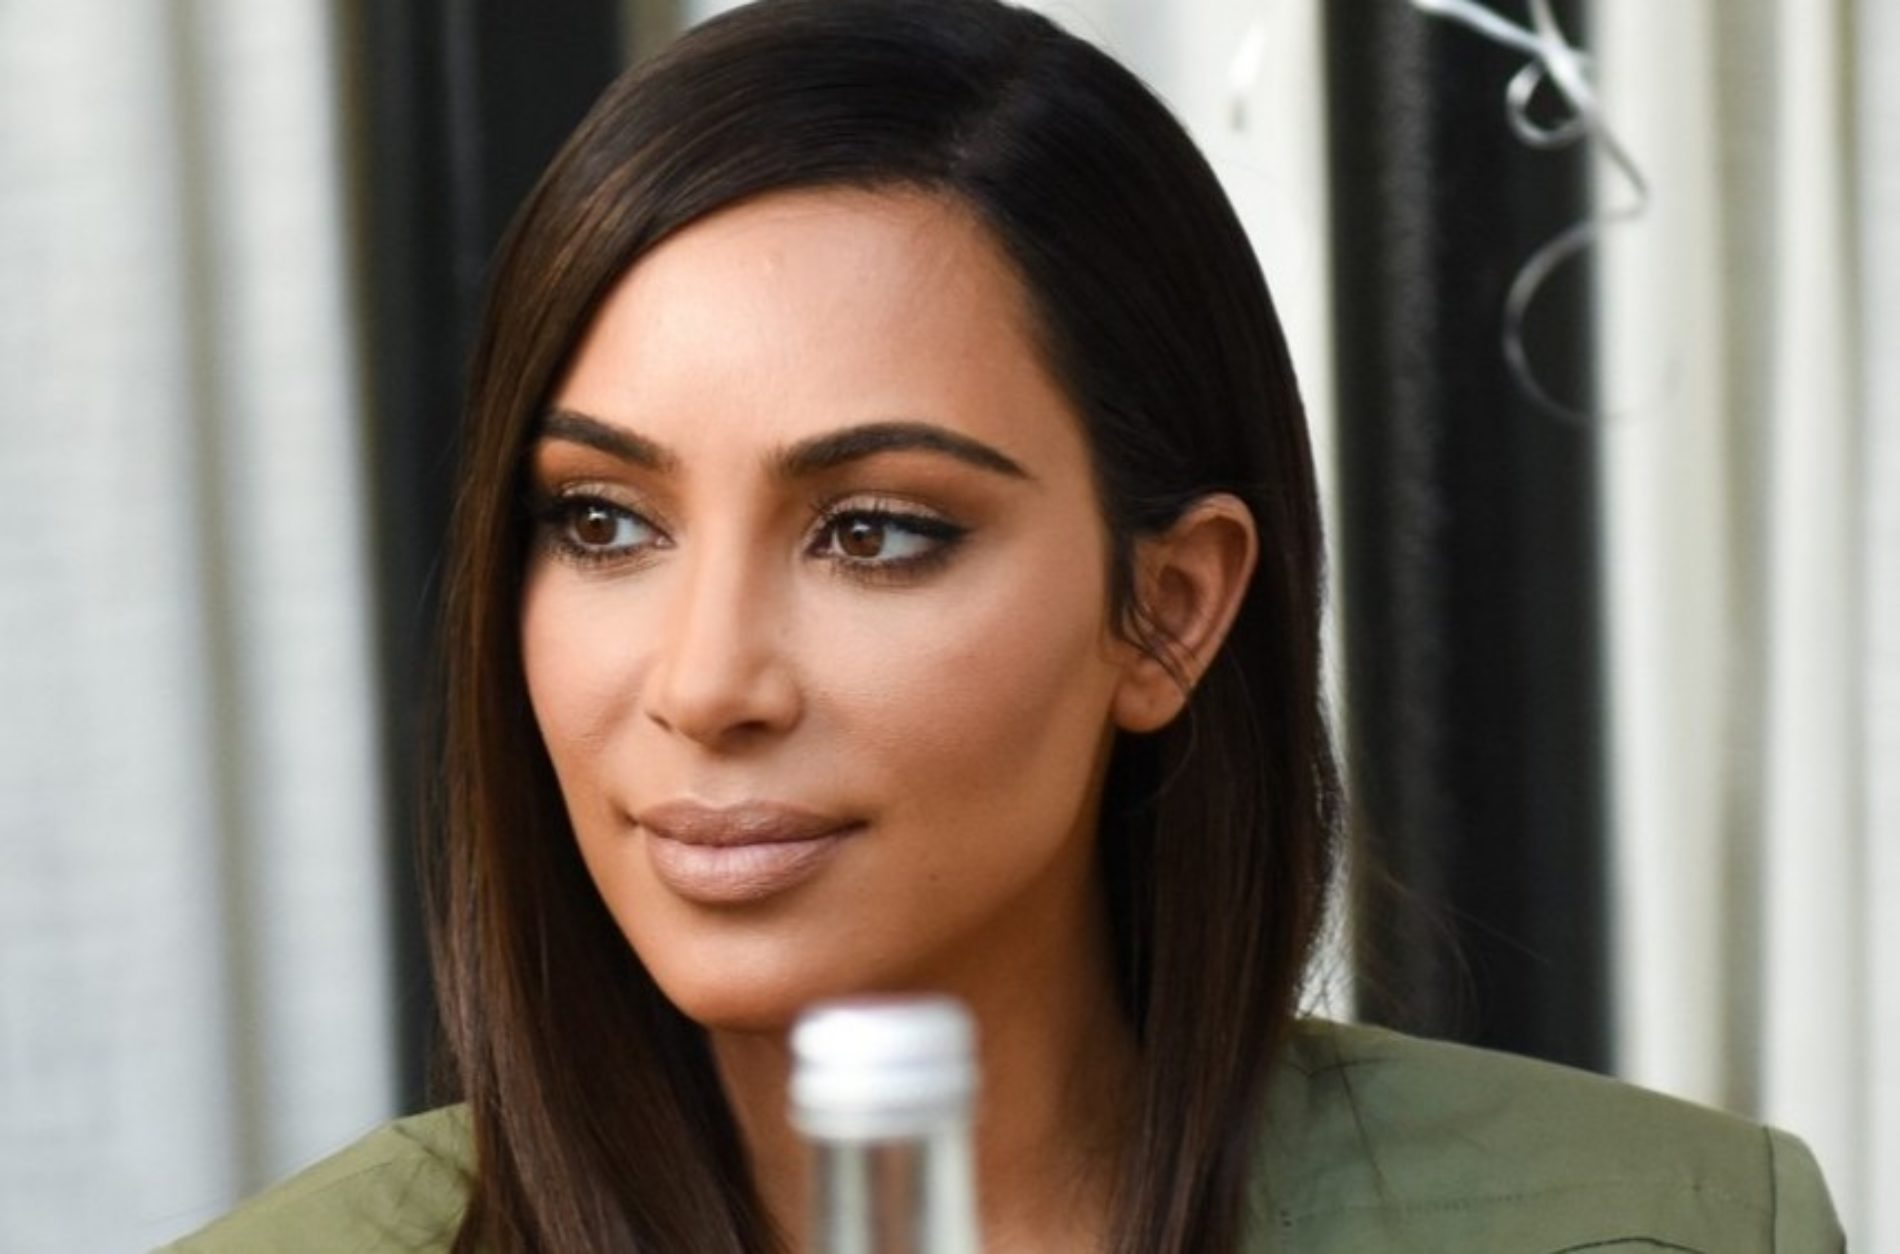 The Piece About The Dehumanization Of Kim Kardashian